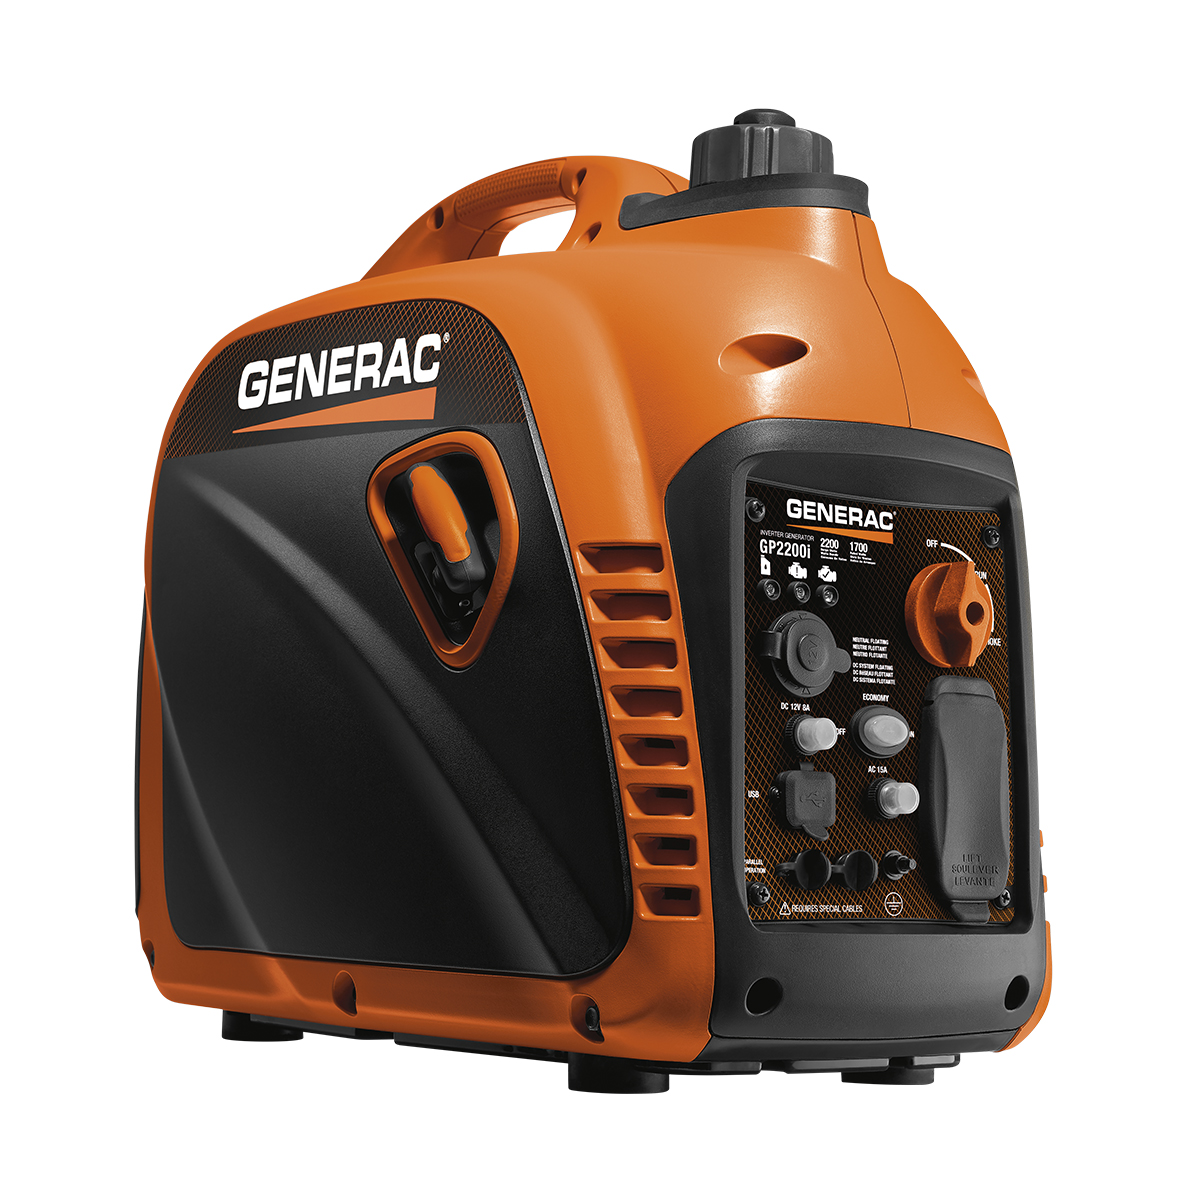 The GP1200i portable generator is 1200 watts and great for camping, tailgating or other activities on the go!